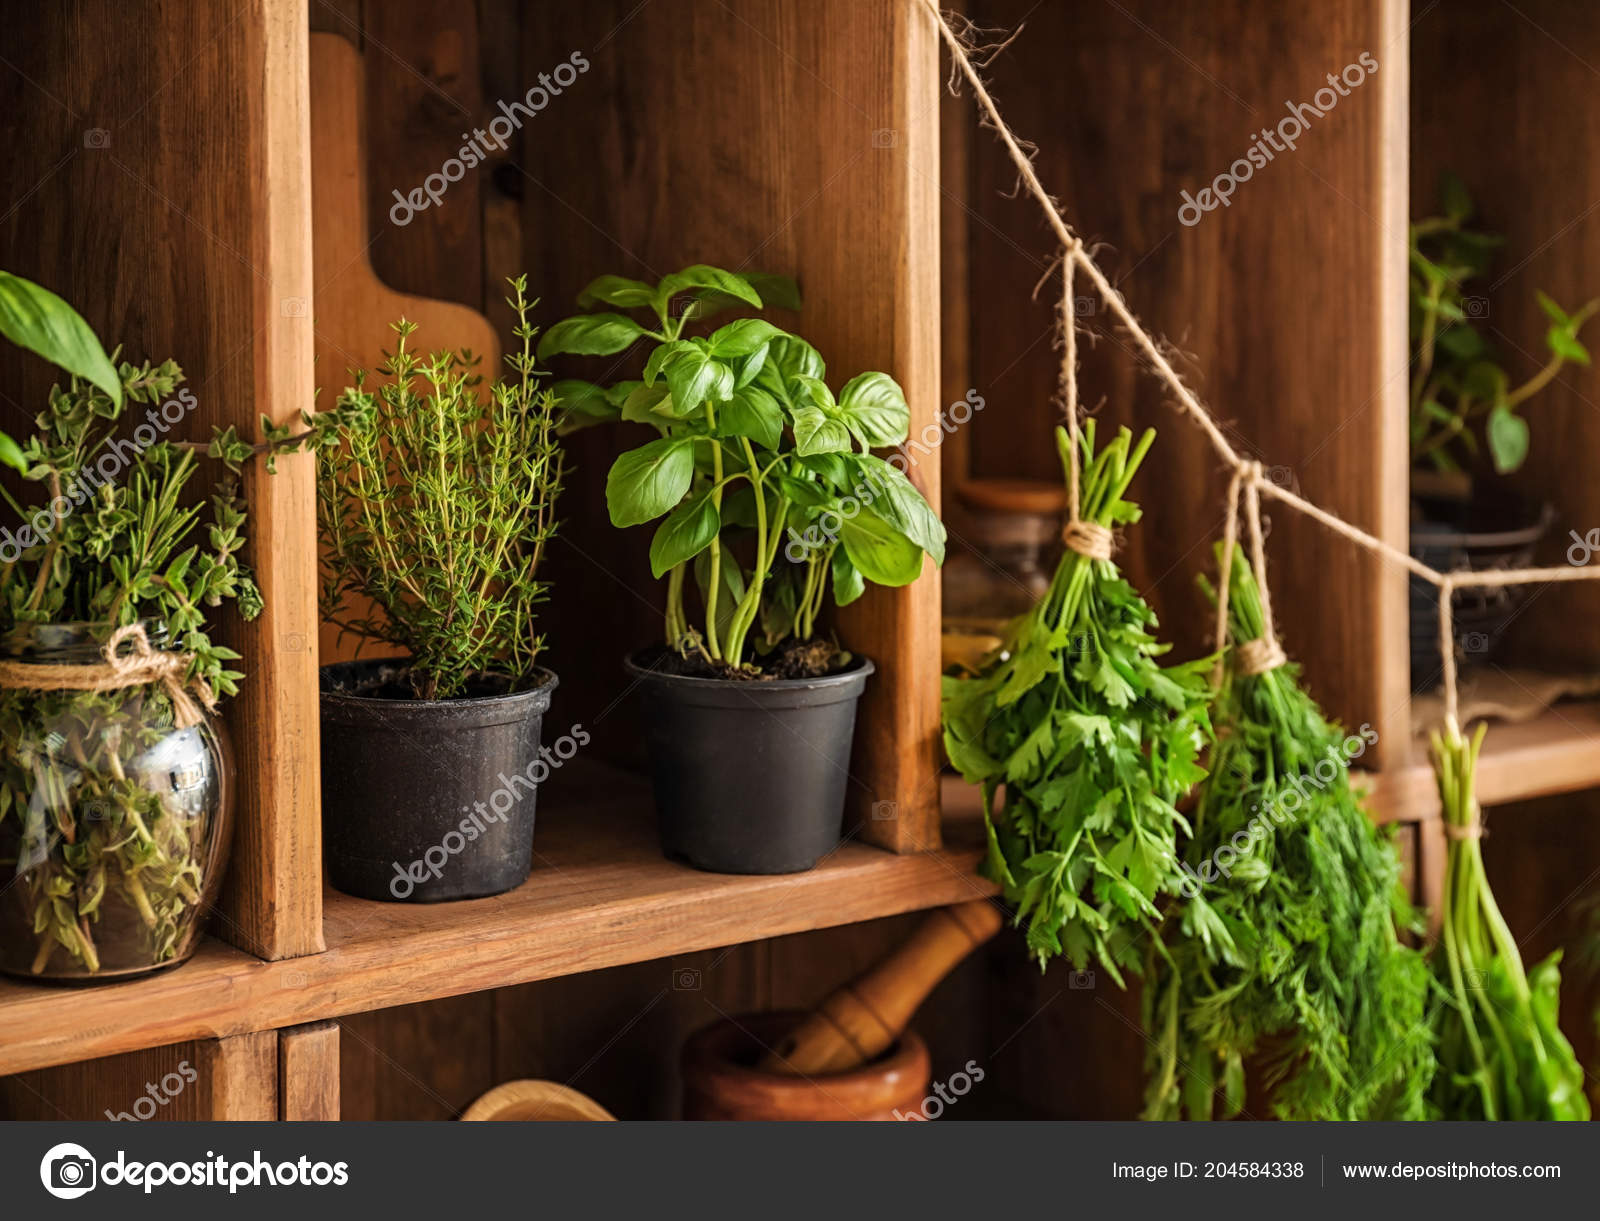 Pots Bunches Fresh Herbs Hanging String Wooden Shelves